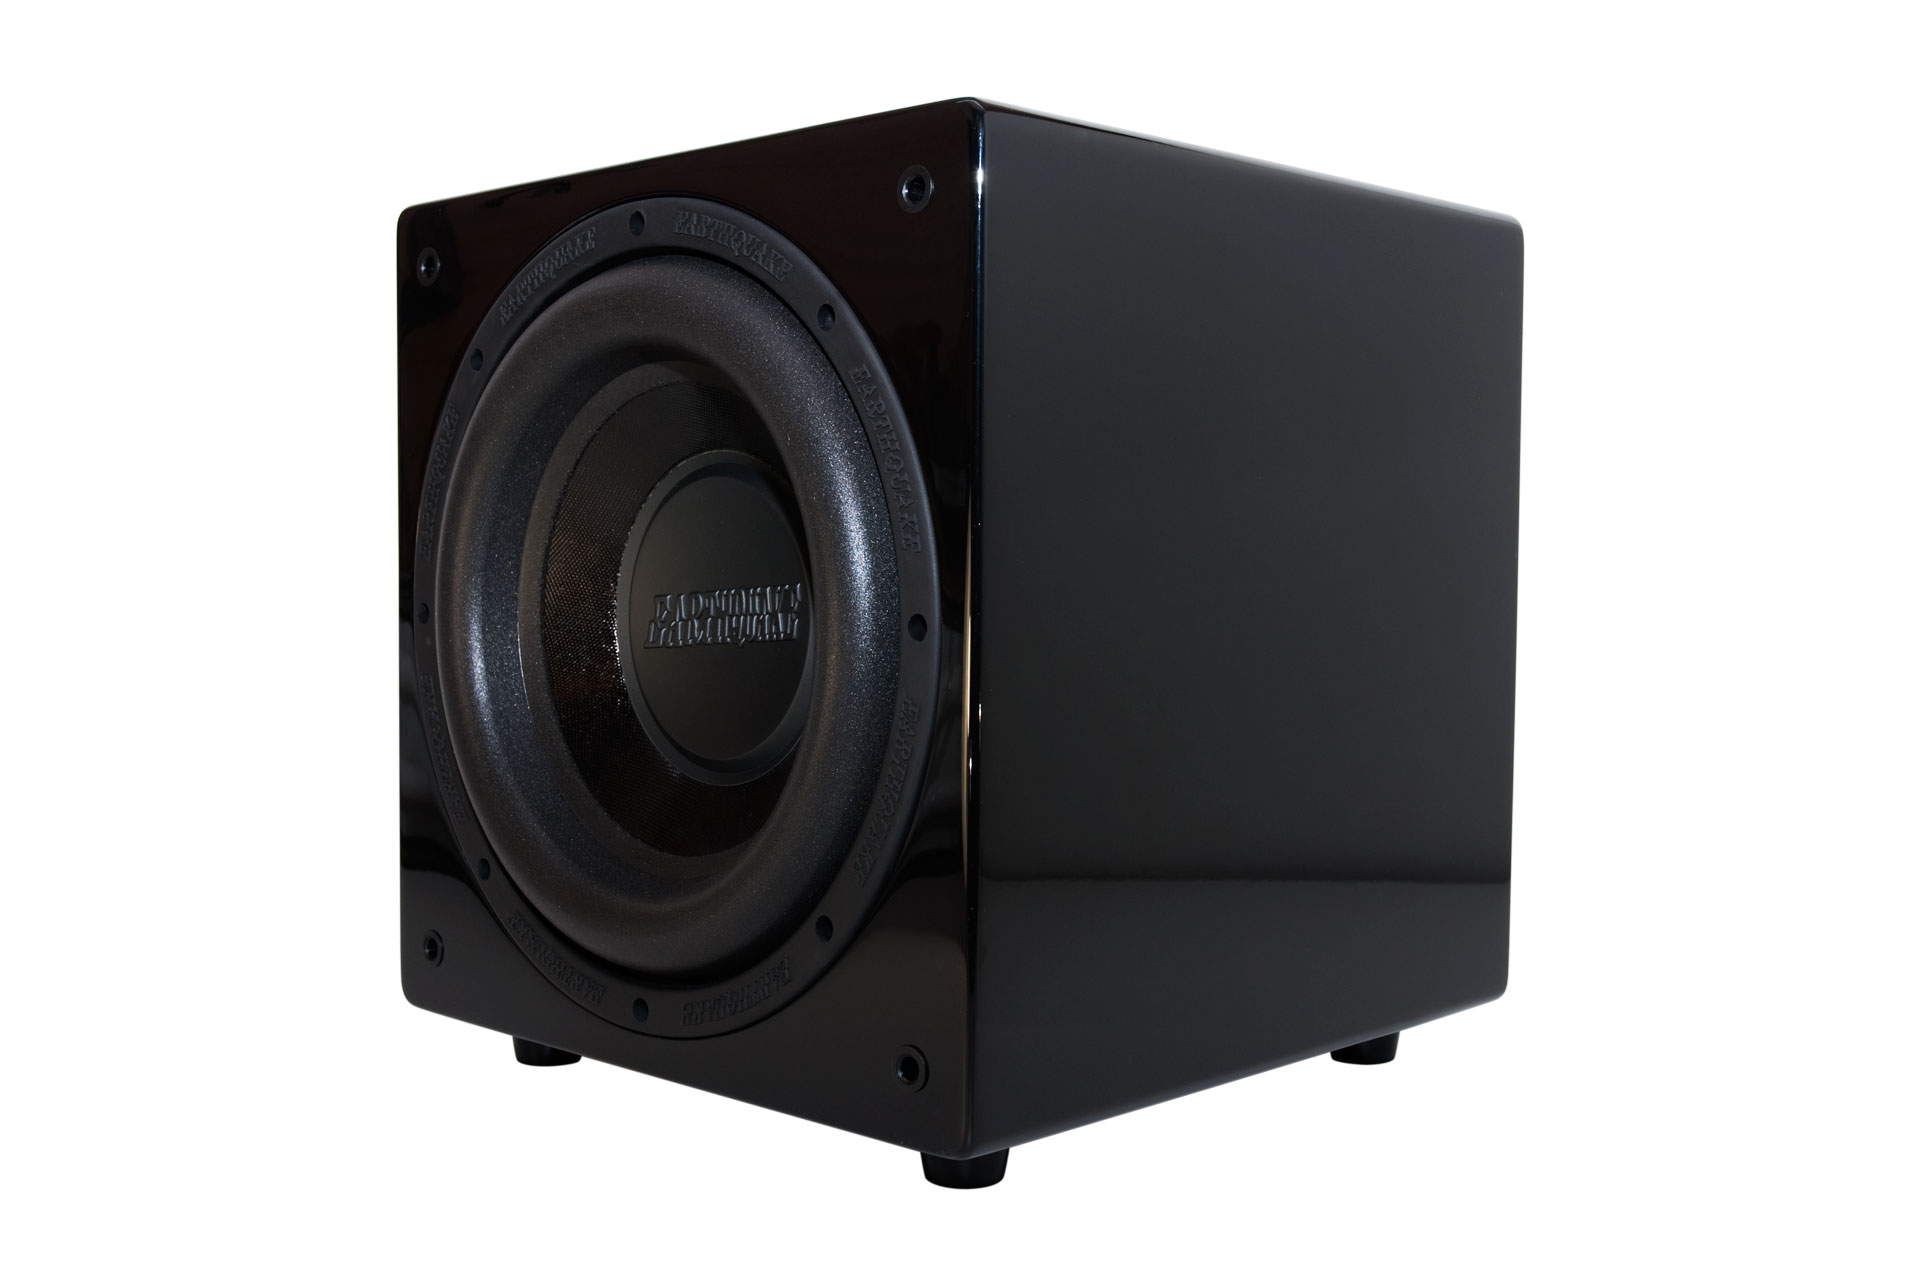 Earthquake MINIME-P10 Subwoofer